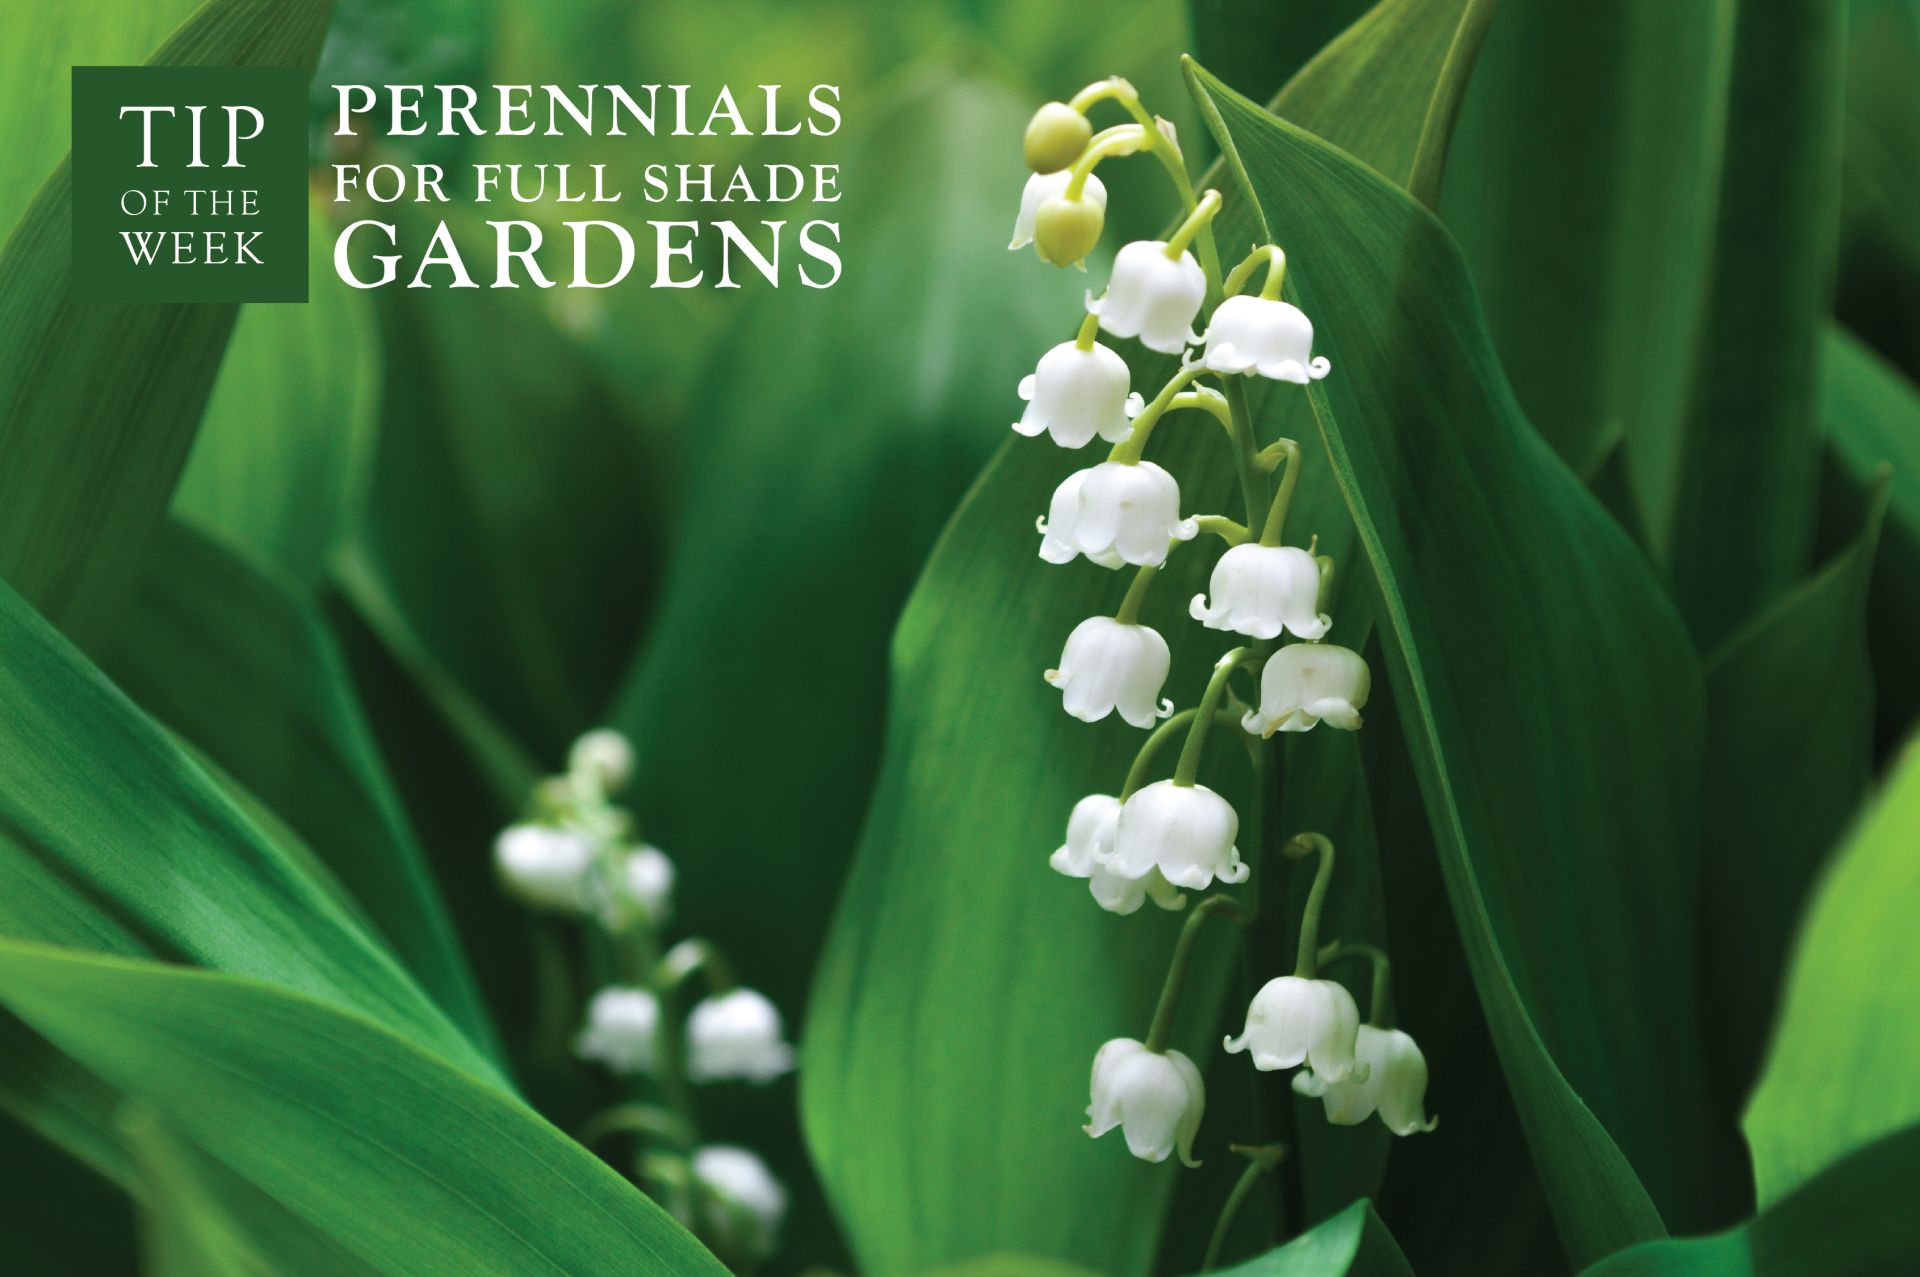 Perennials for Full Shade Gardens